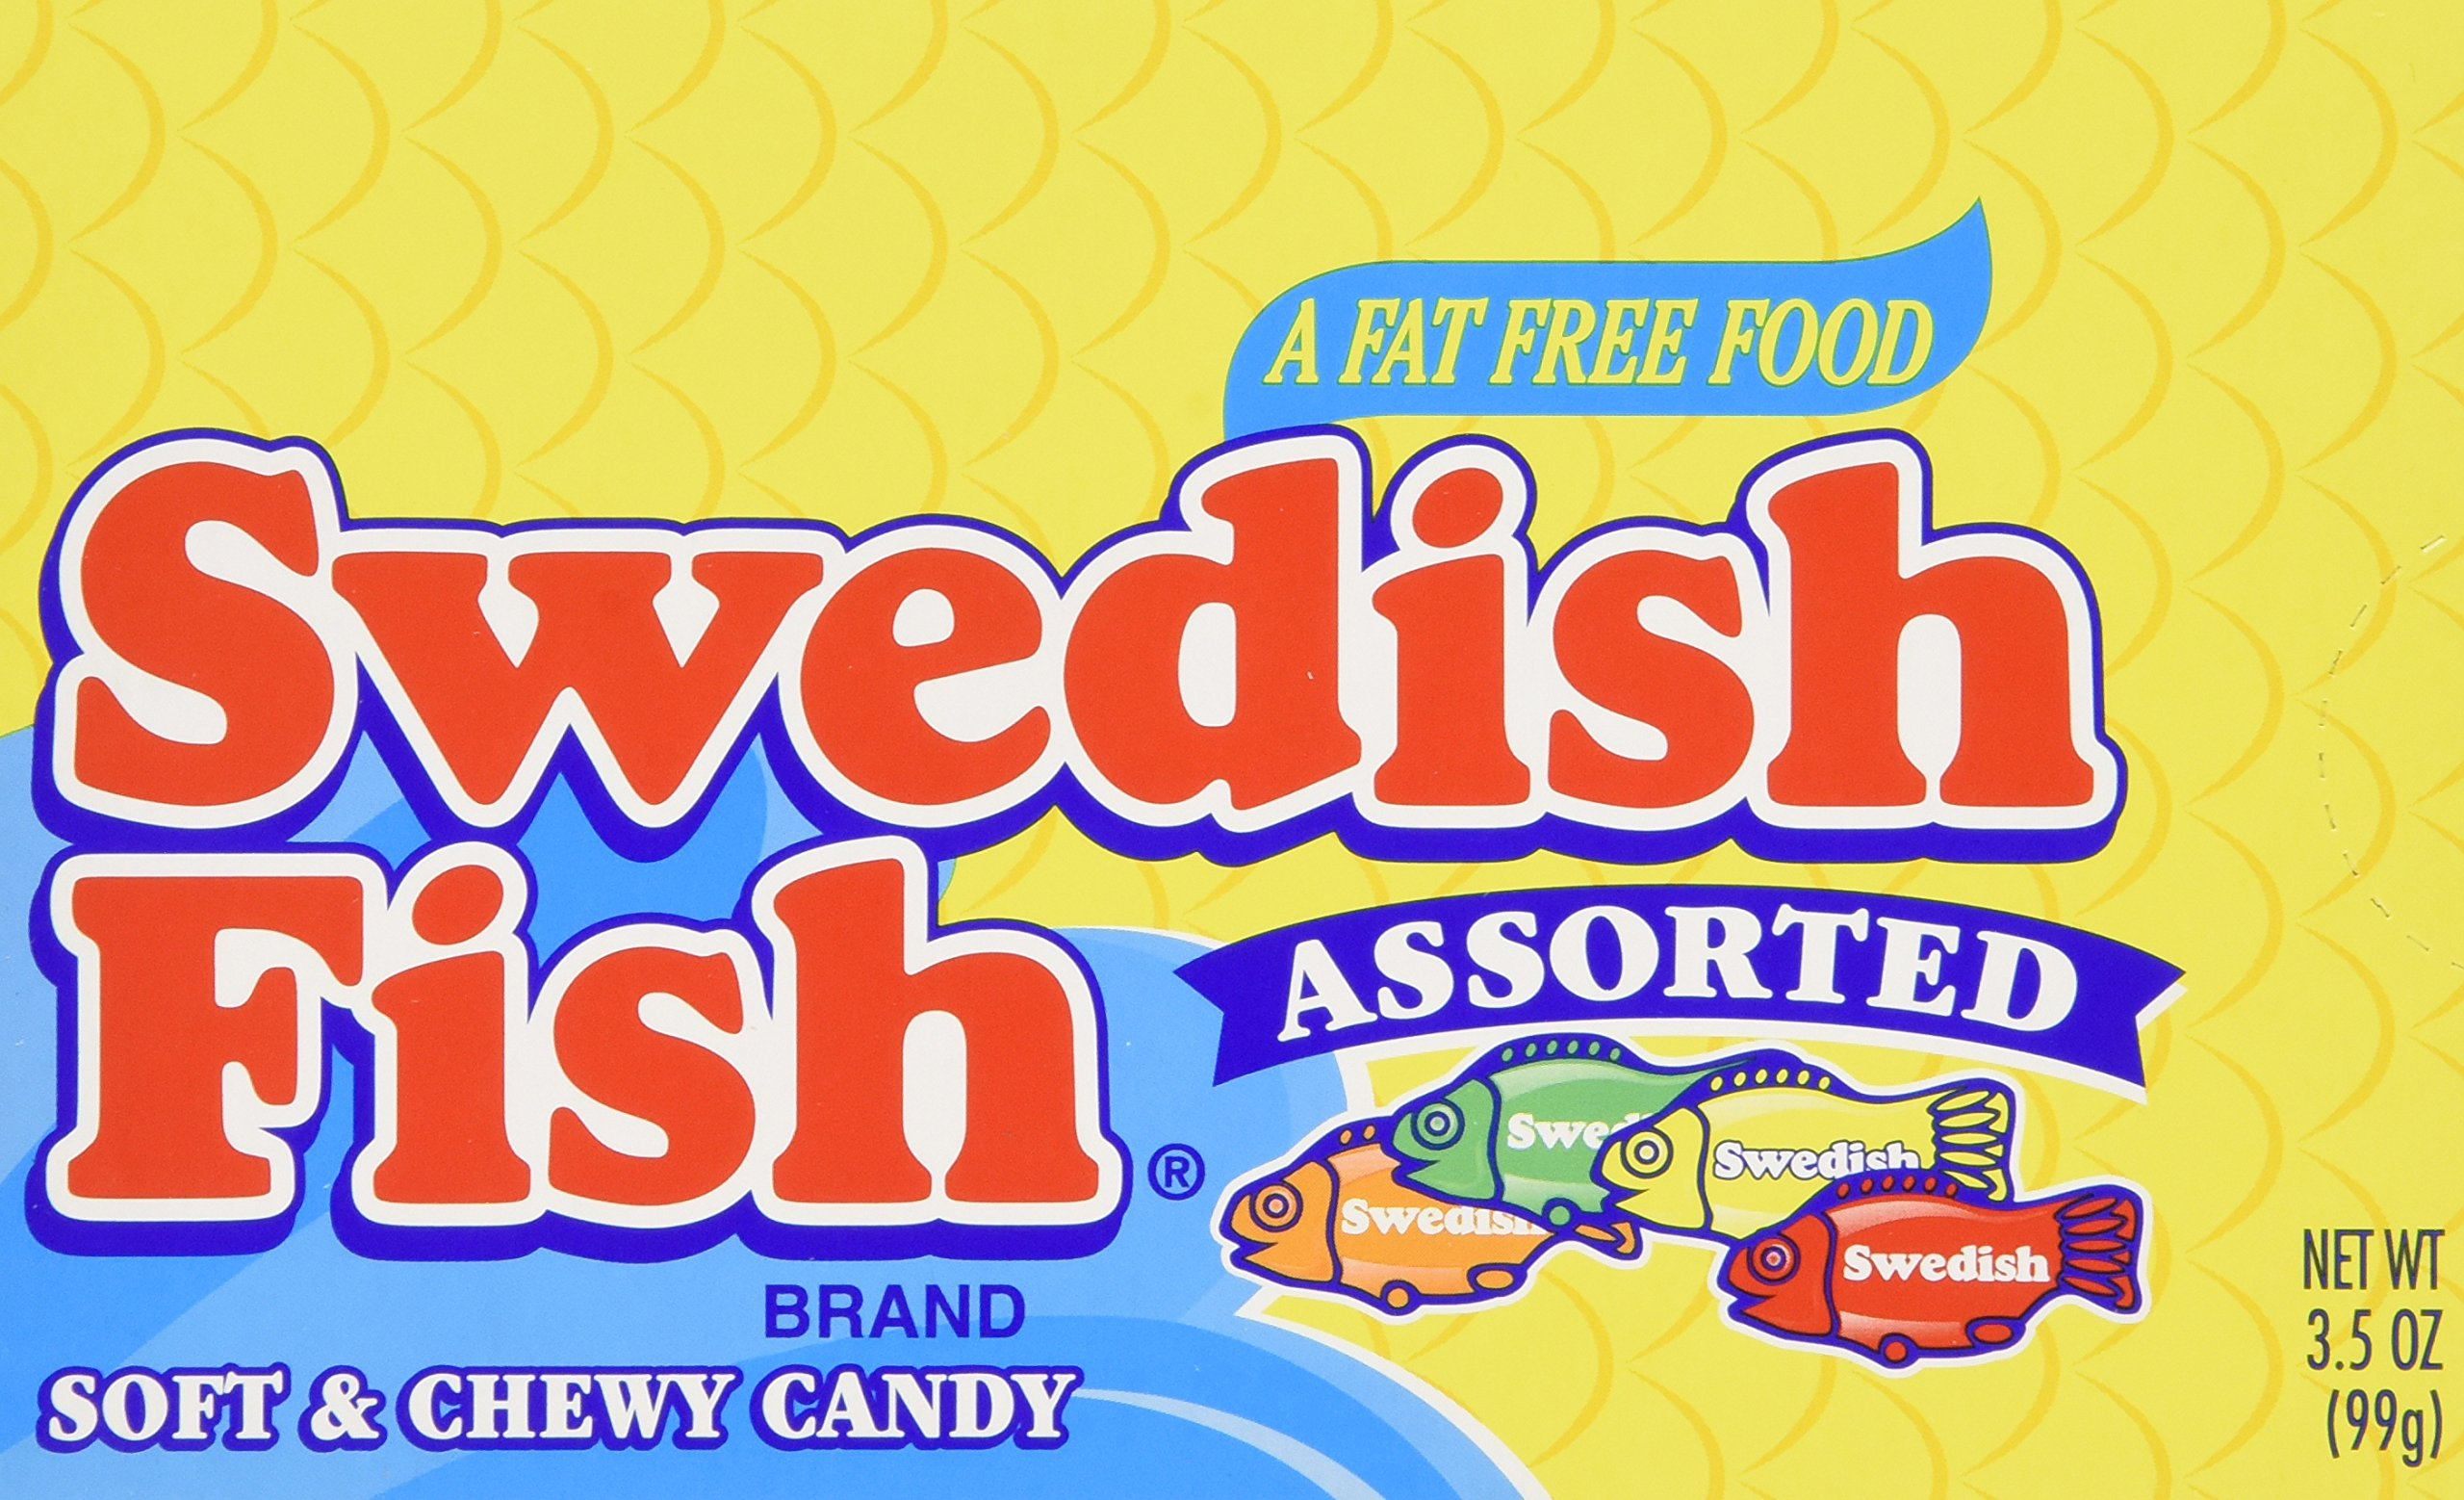 Swedish Fish Assorted Soft & Chewy Candy, 3.5-Ounce Boxes (Pack of 60) by Swedish Fish